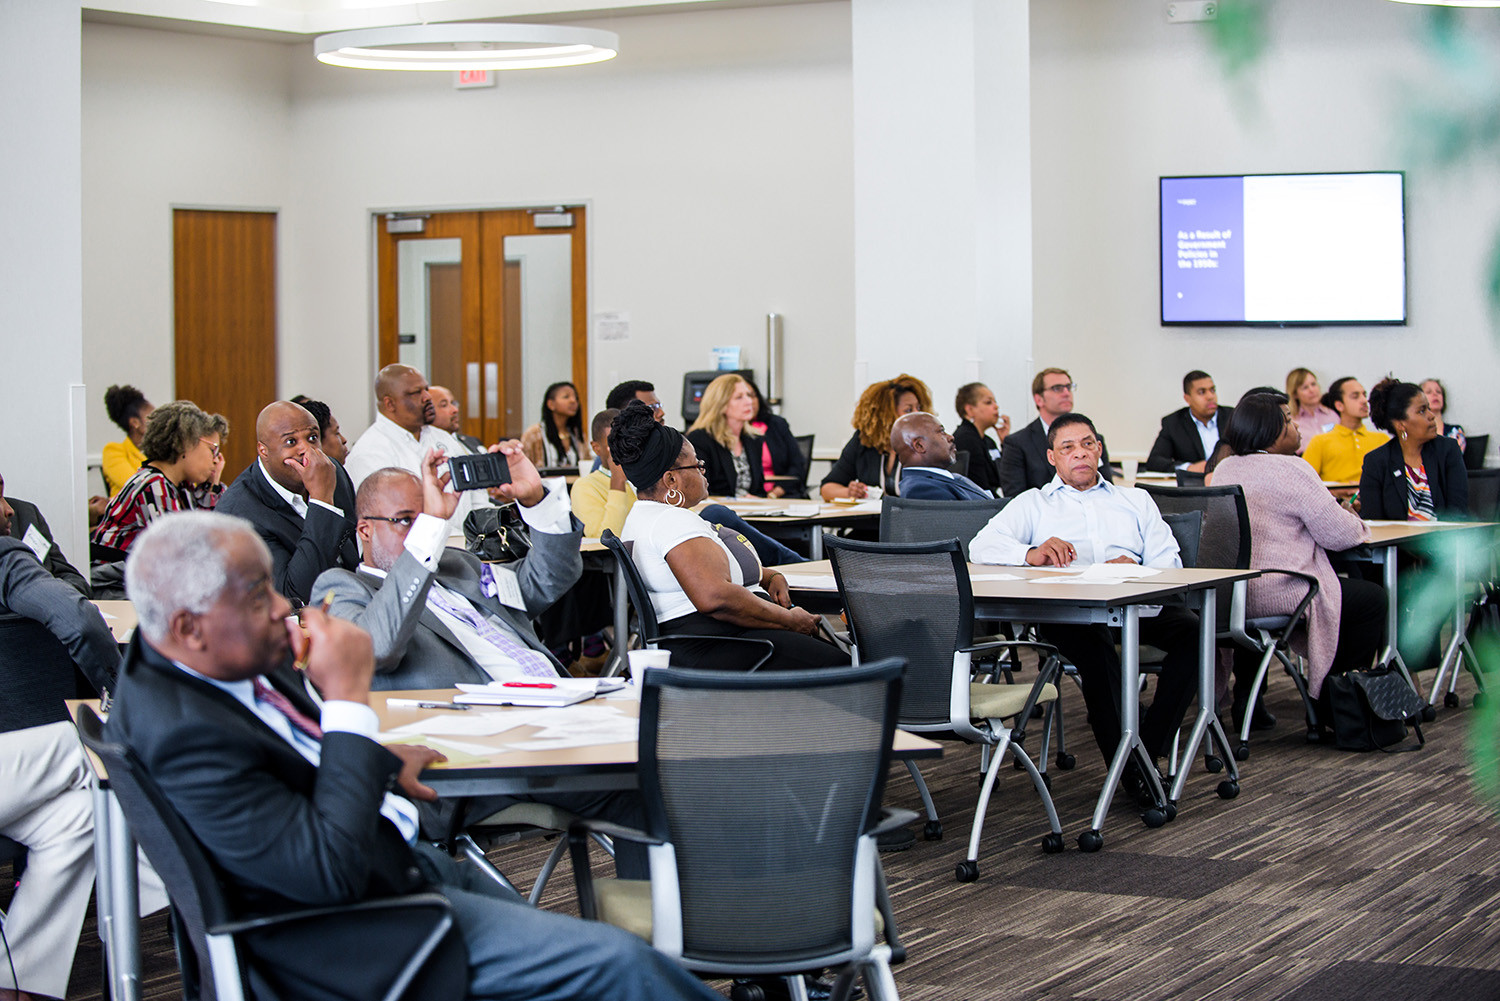 PARTNERING WITH THE AFRICAN AMERICAN CHAMBER FOR REAL ESTATE FORUMS